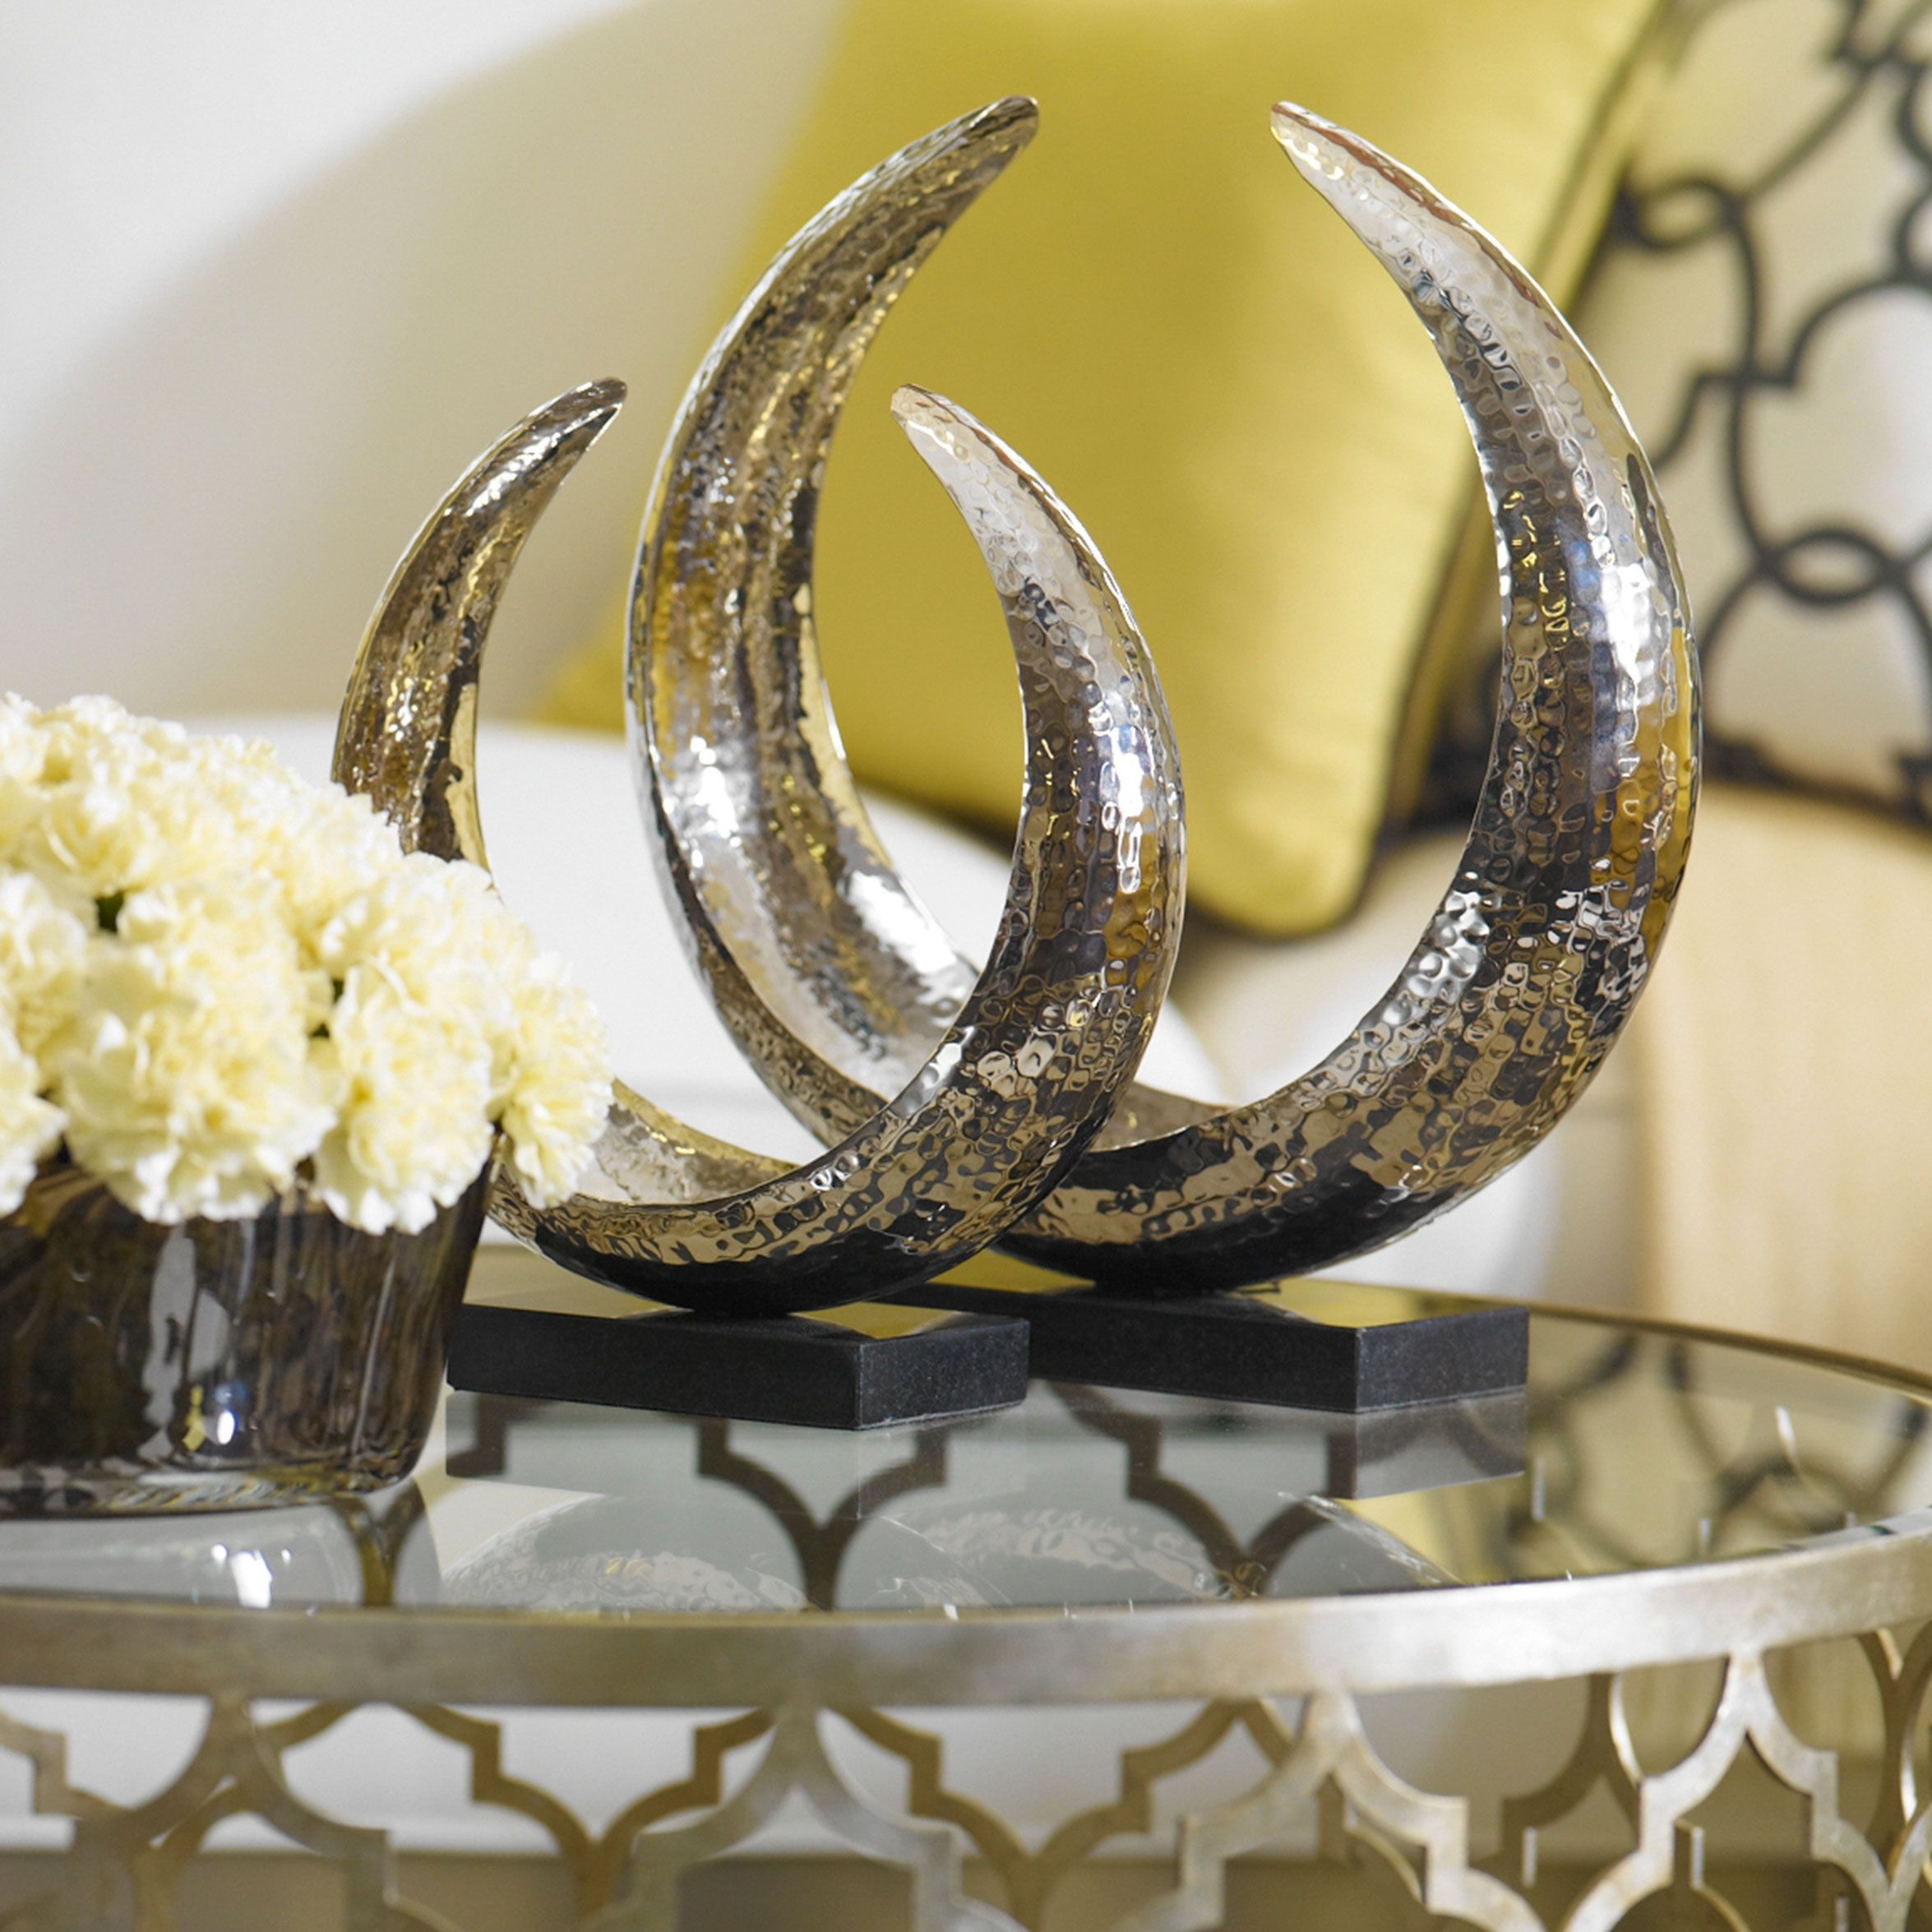 Decorative Objects For The Home: Silver Home Decor. Large Horseshoe Sculpture